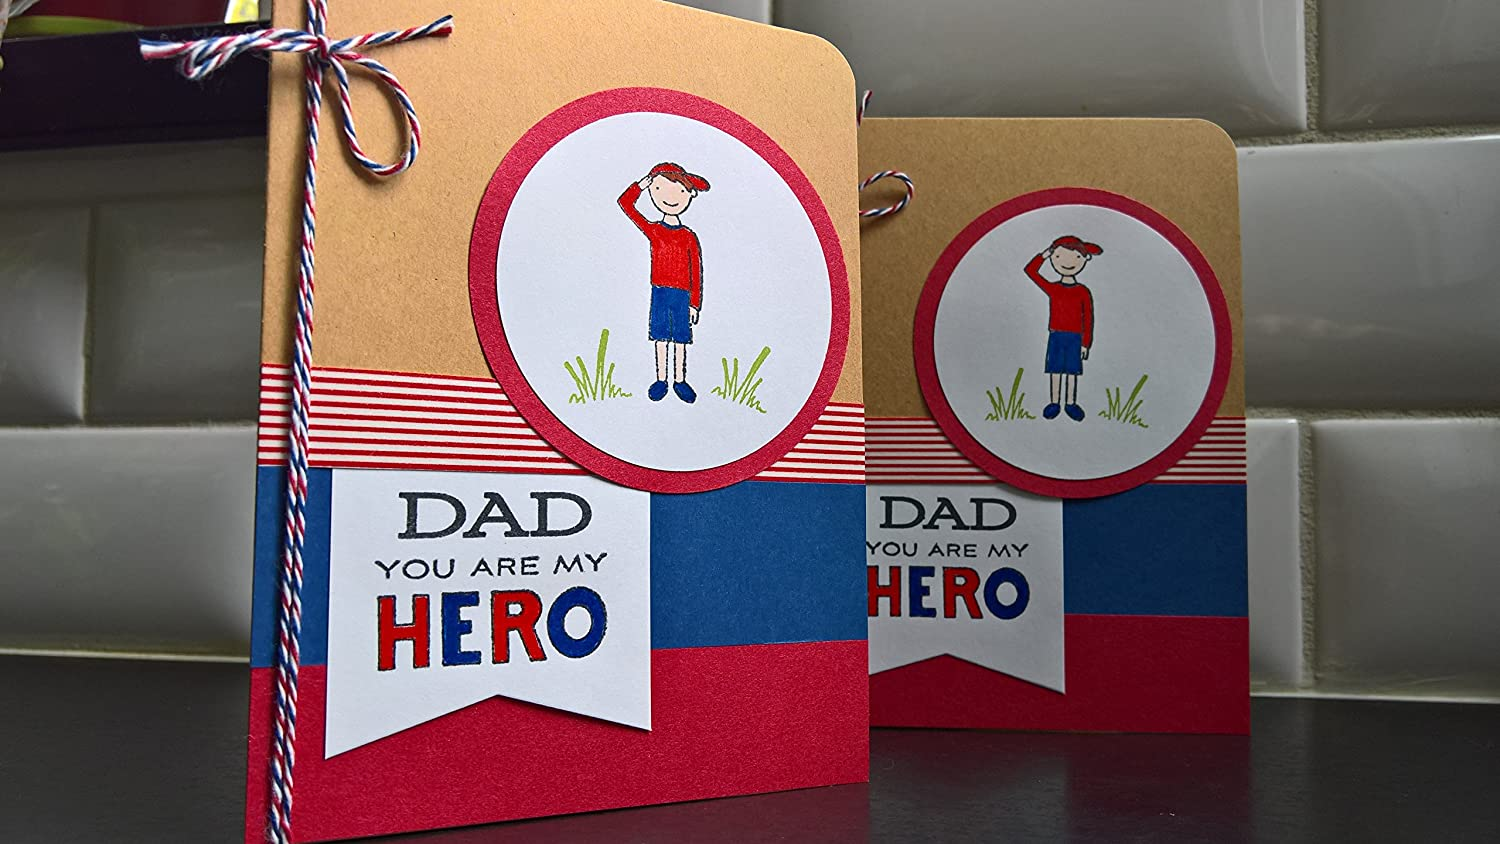 Fathers Day Card Dads Day Card Patriotic Birthday Card for Dad Armed Services Card Card for Military Dad You are My Hero